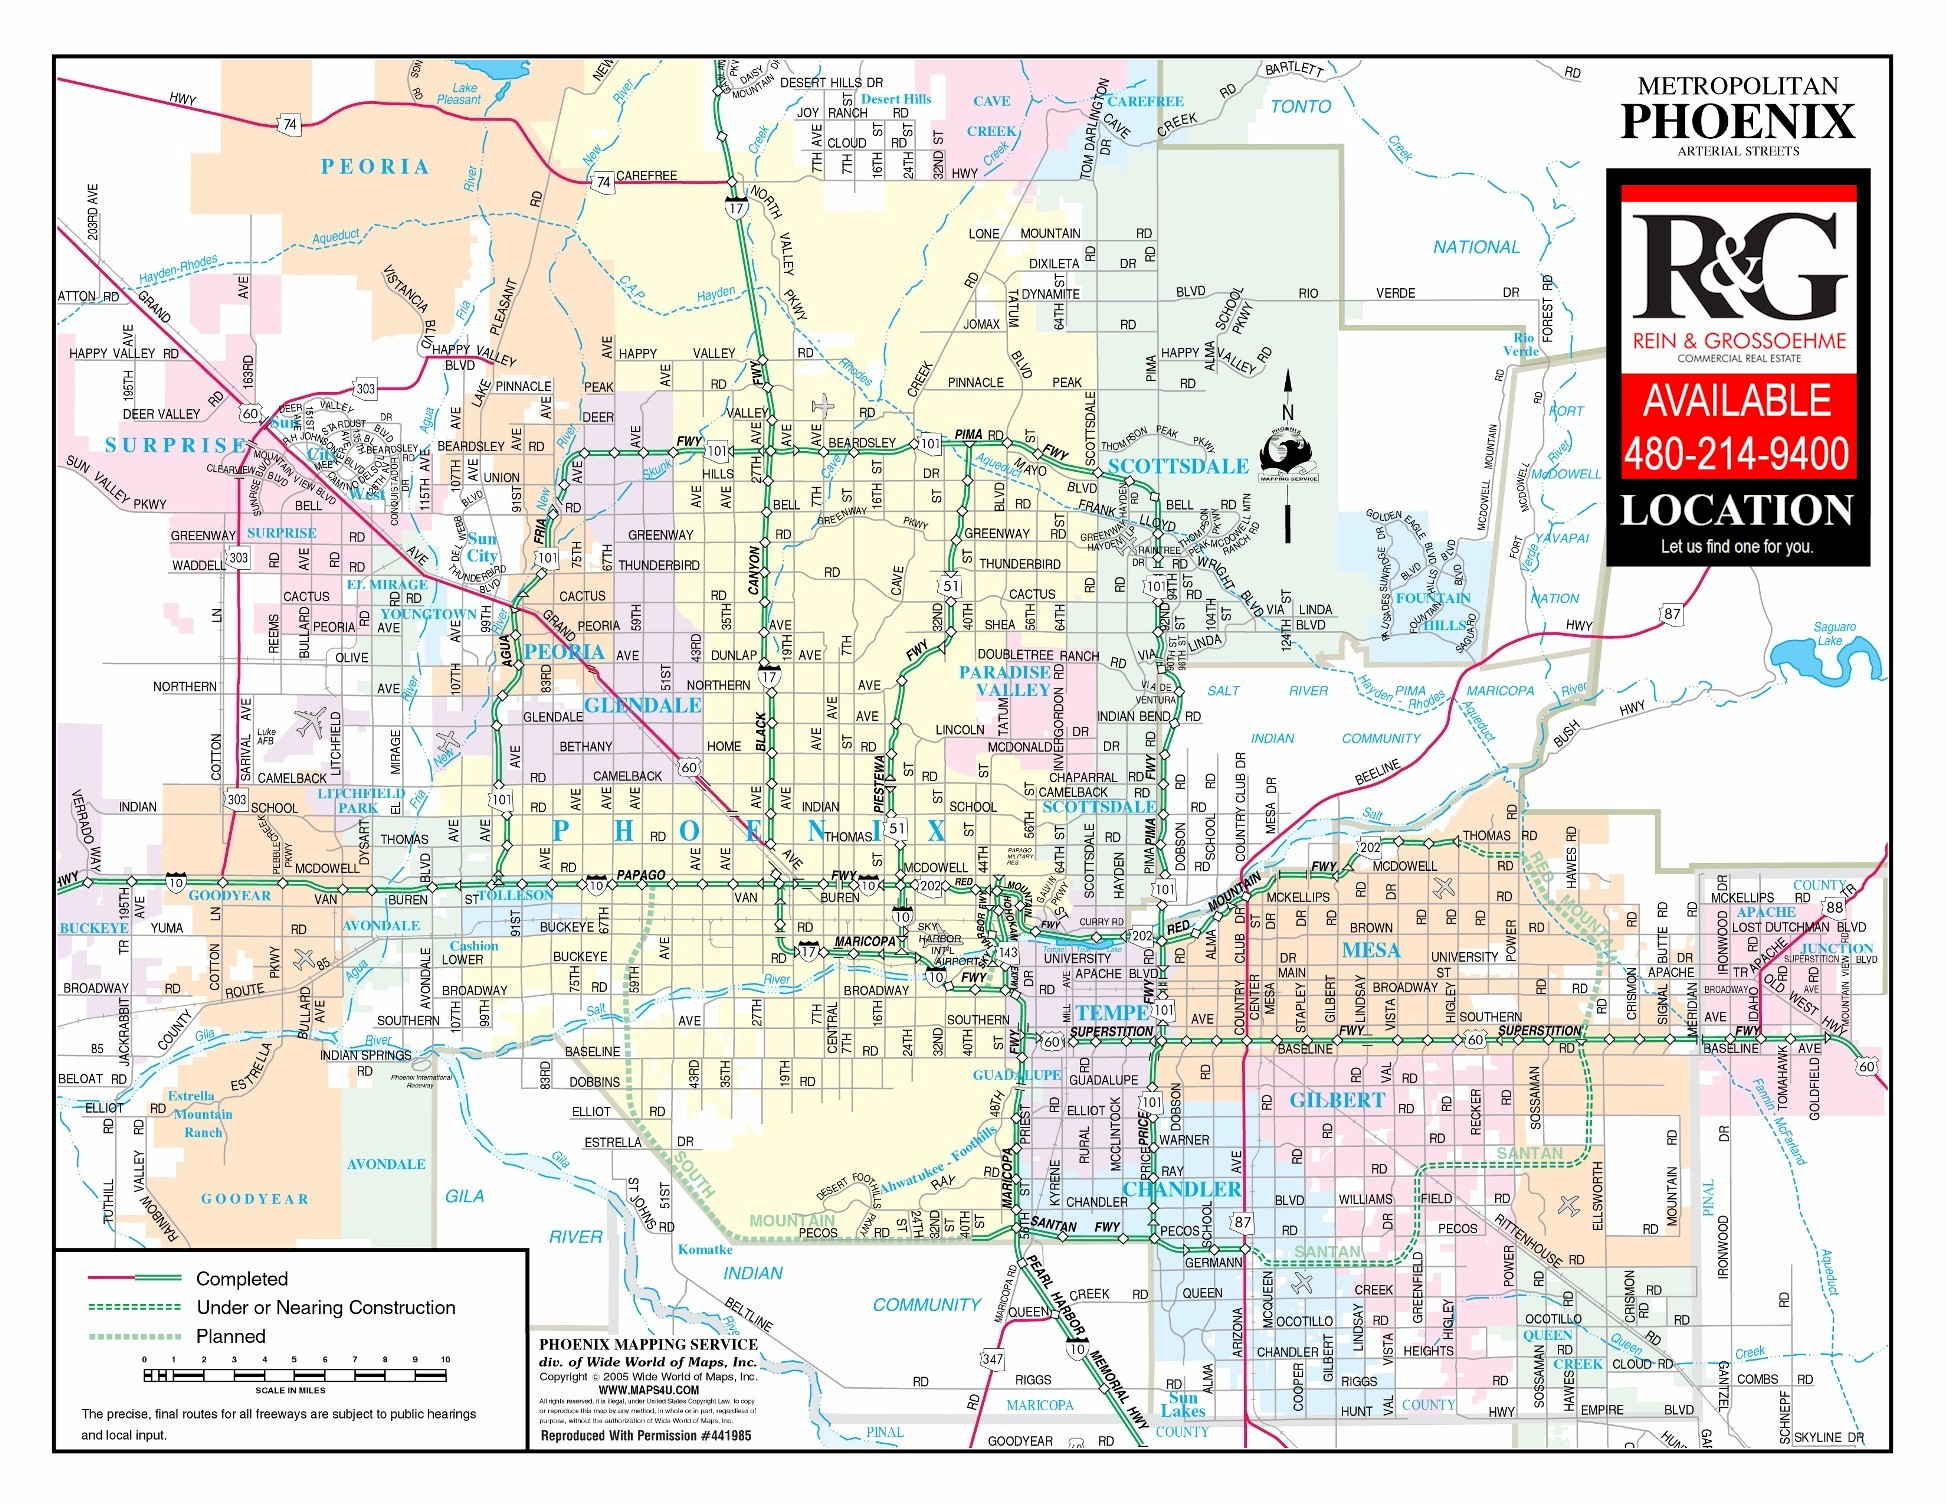 phoenix arizona map. phoenix arizona map  rein  grossoehme commercial real estate